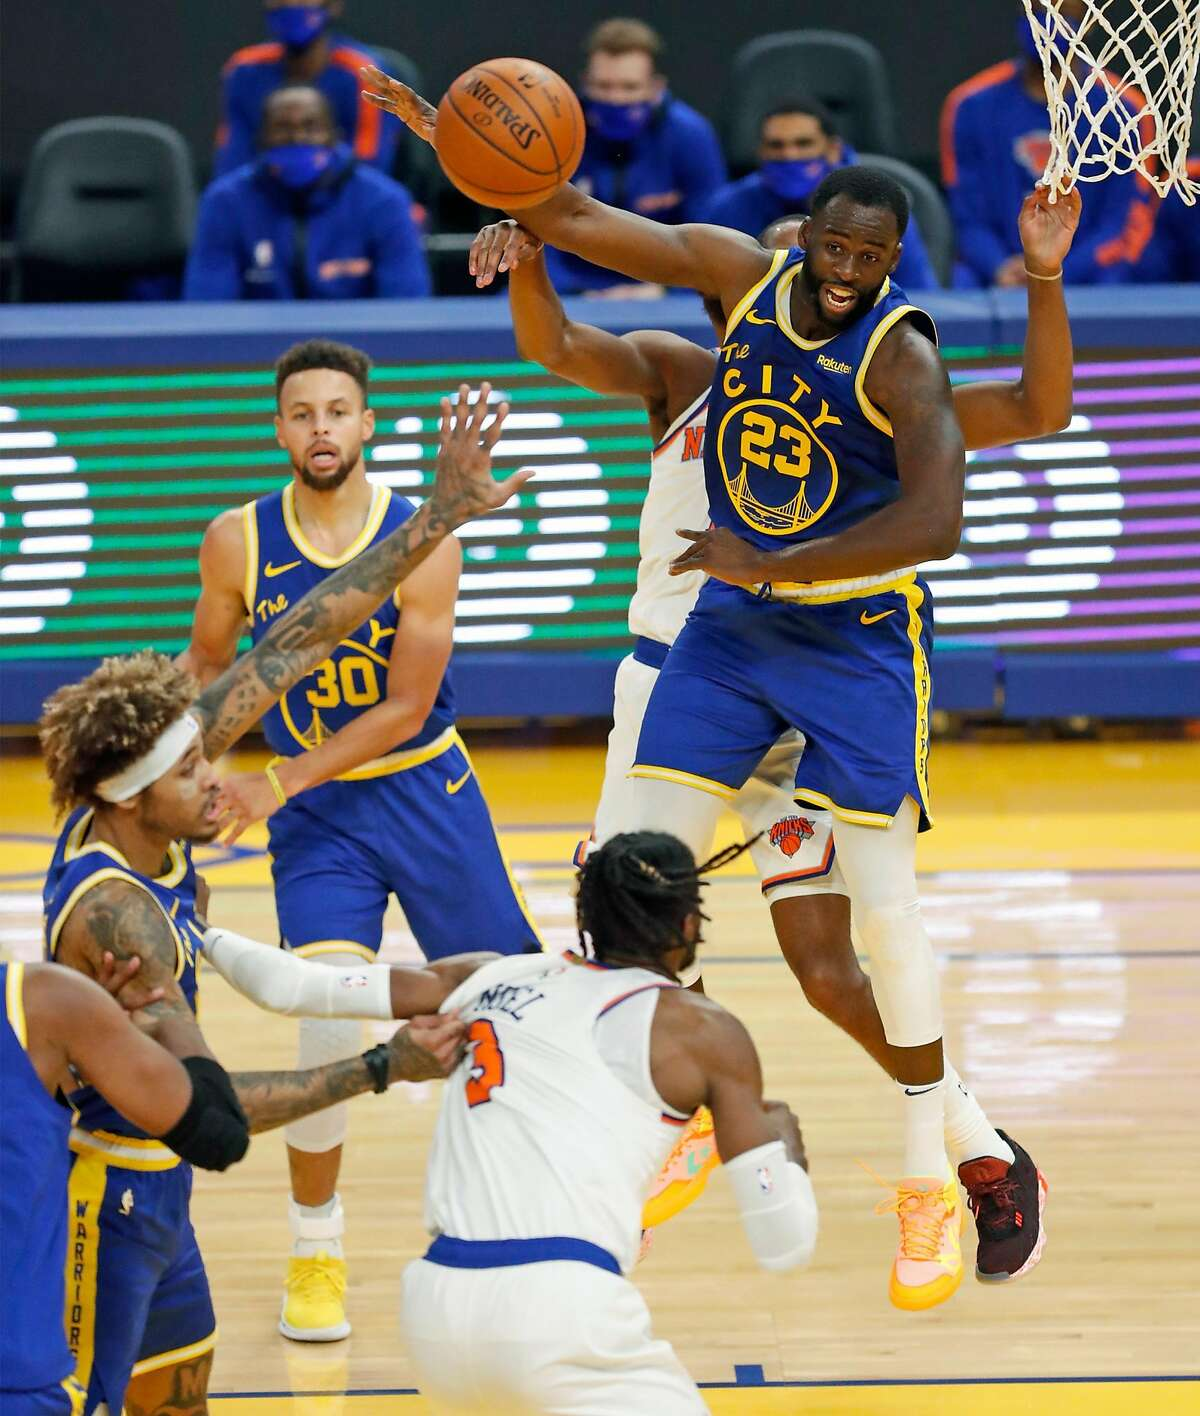 Draymond Green's 4.8 points per game on 34.9% shooting may not pop off the stat sheet, but his supreme court awareness is far more important to the Warriors.